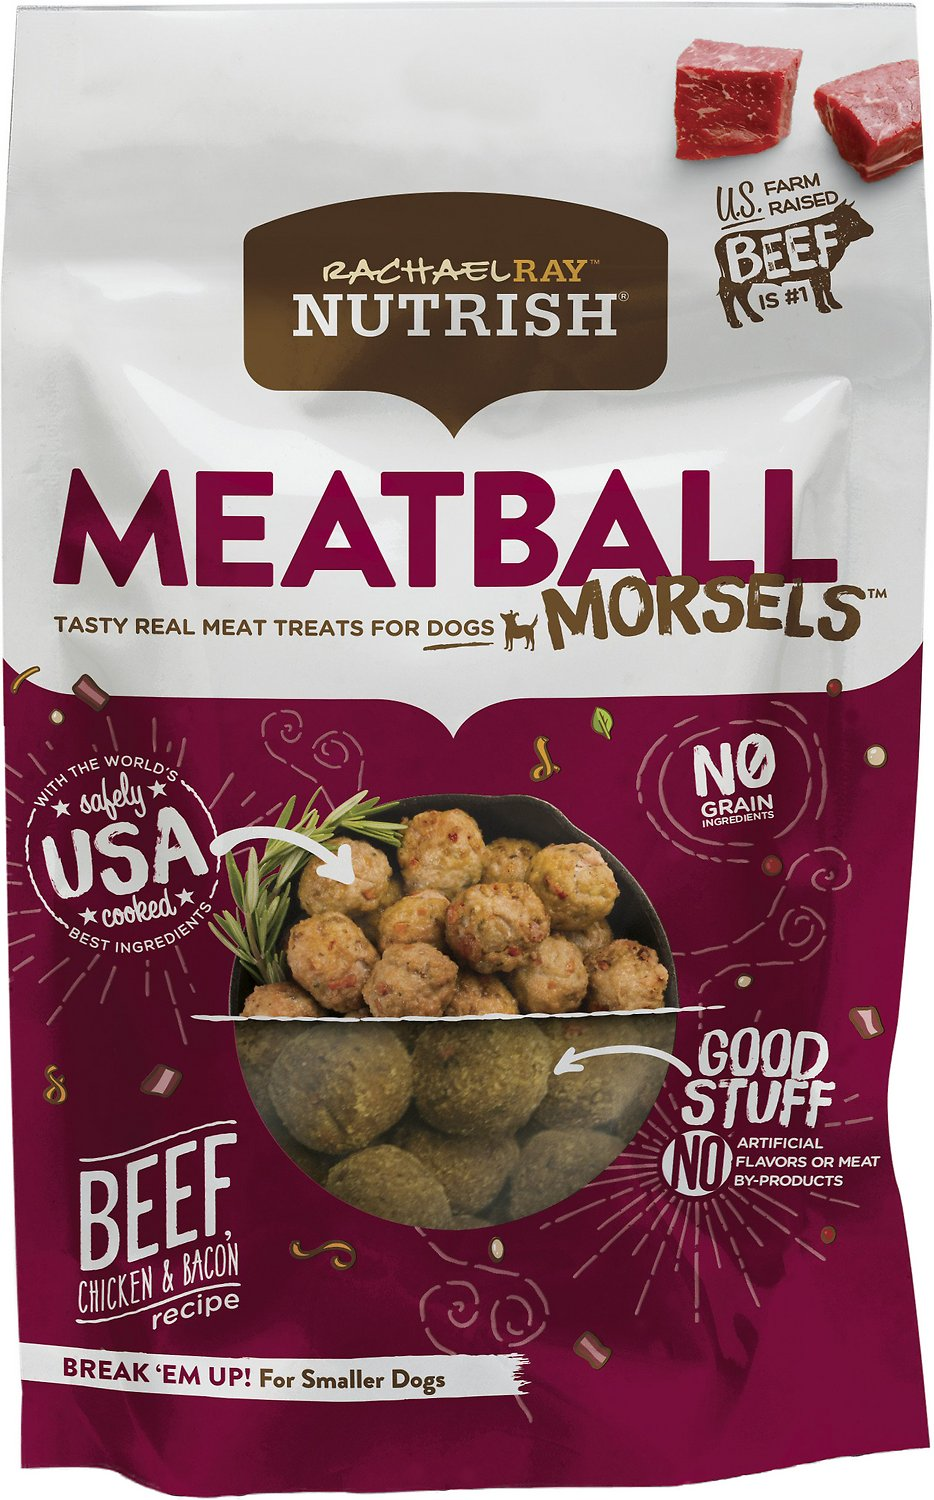 Rachael Ray™ Nutrish® Tasty Real Meat Treats for Dogs Meatball Morsels